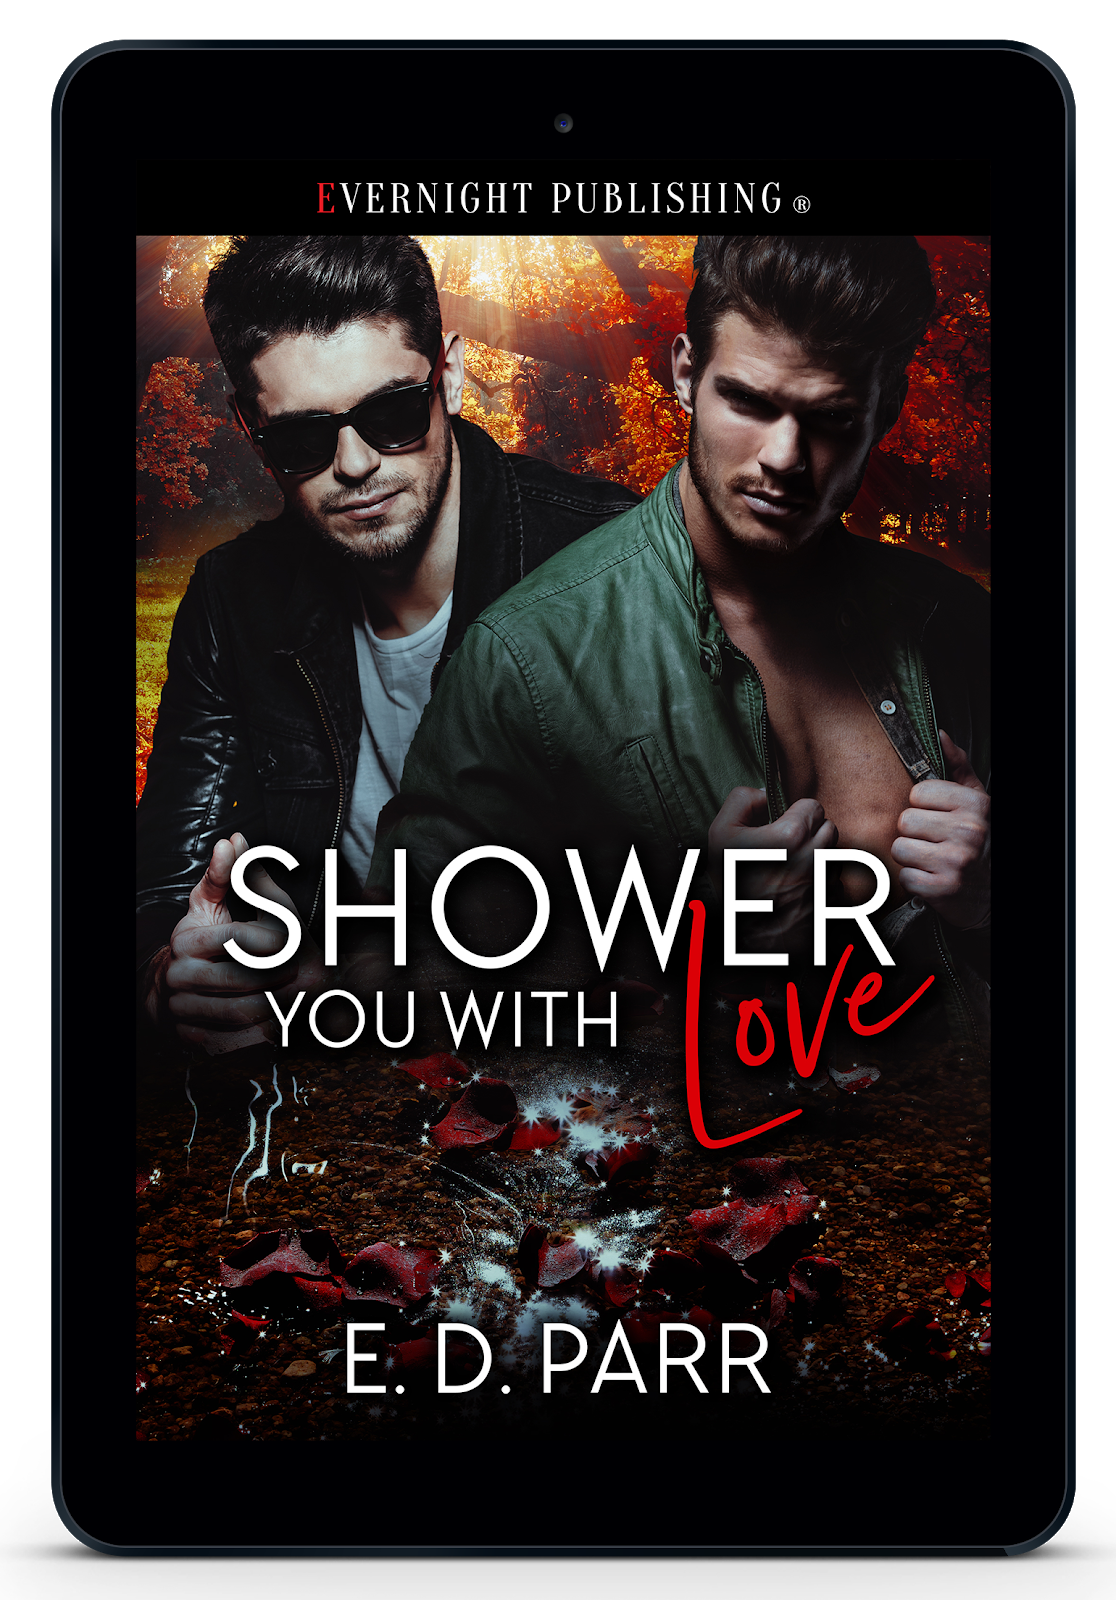 A new MM romance, delicious, spooky, hot and romantic, Shower You With Love.